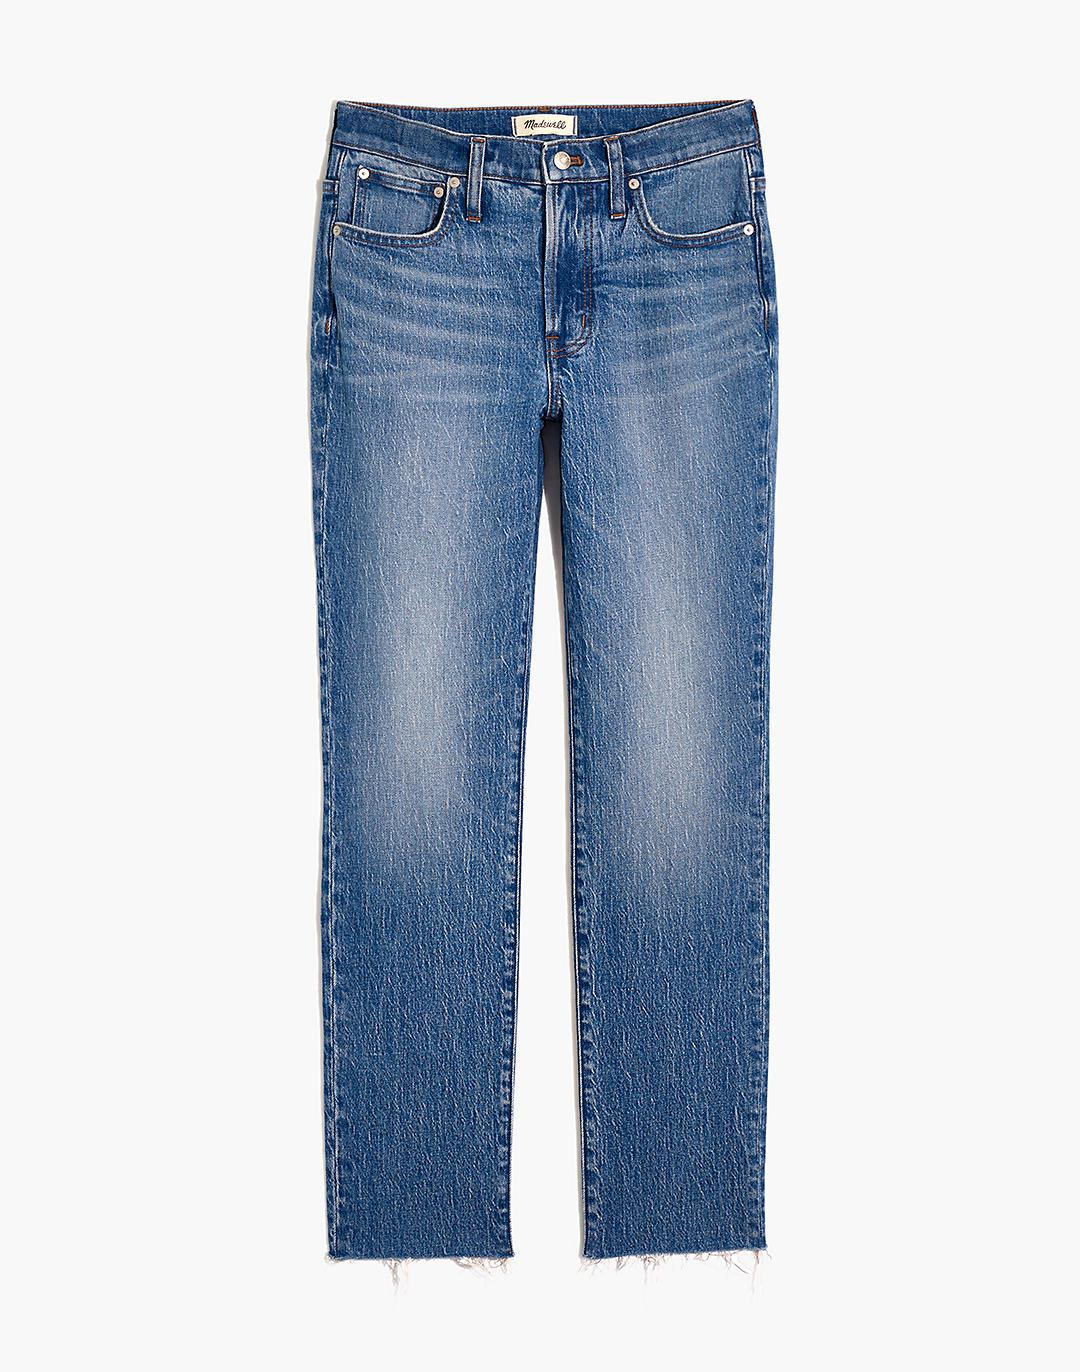 The Mid-Rise Perfect Vintage Jean in Enmore Wash 4